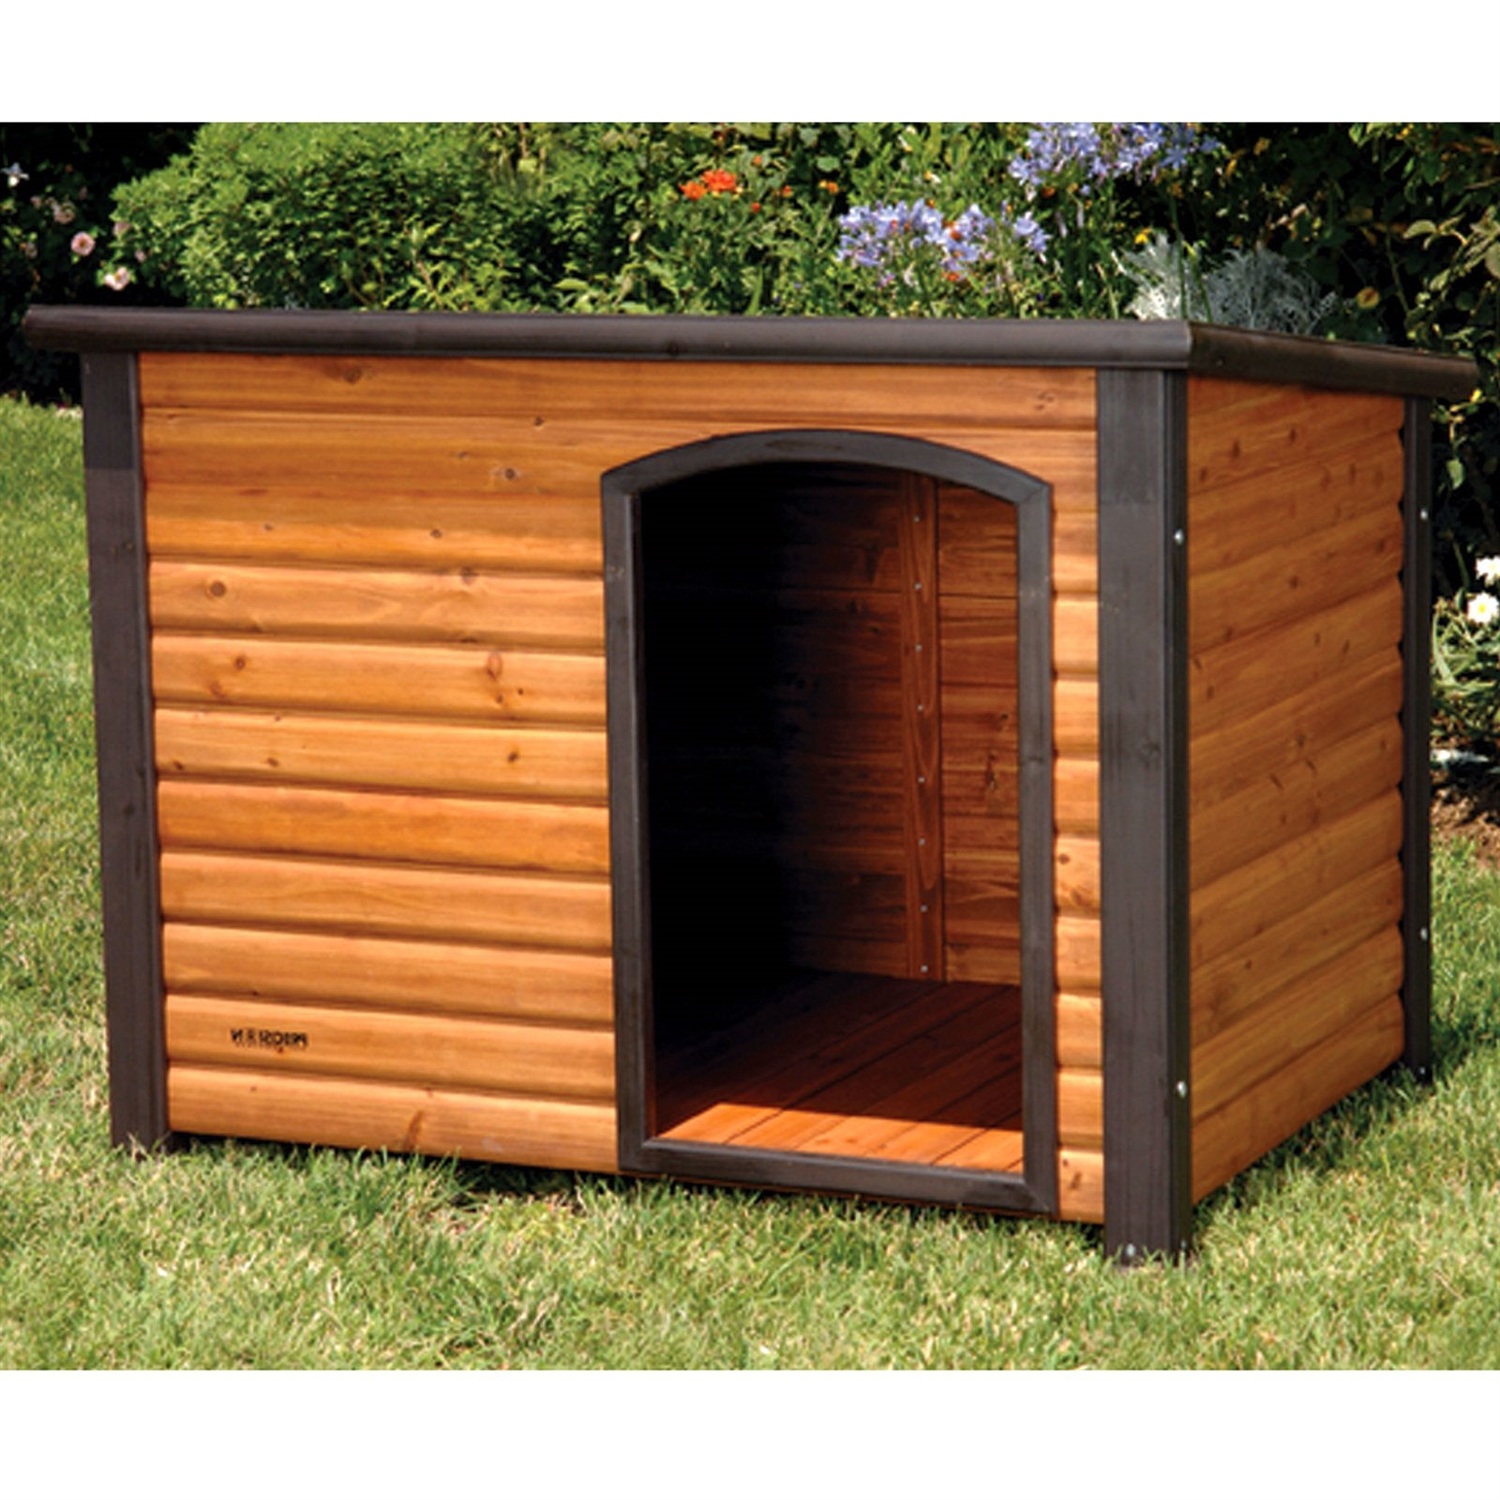 Solid Wood Dog House With Raised Floor